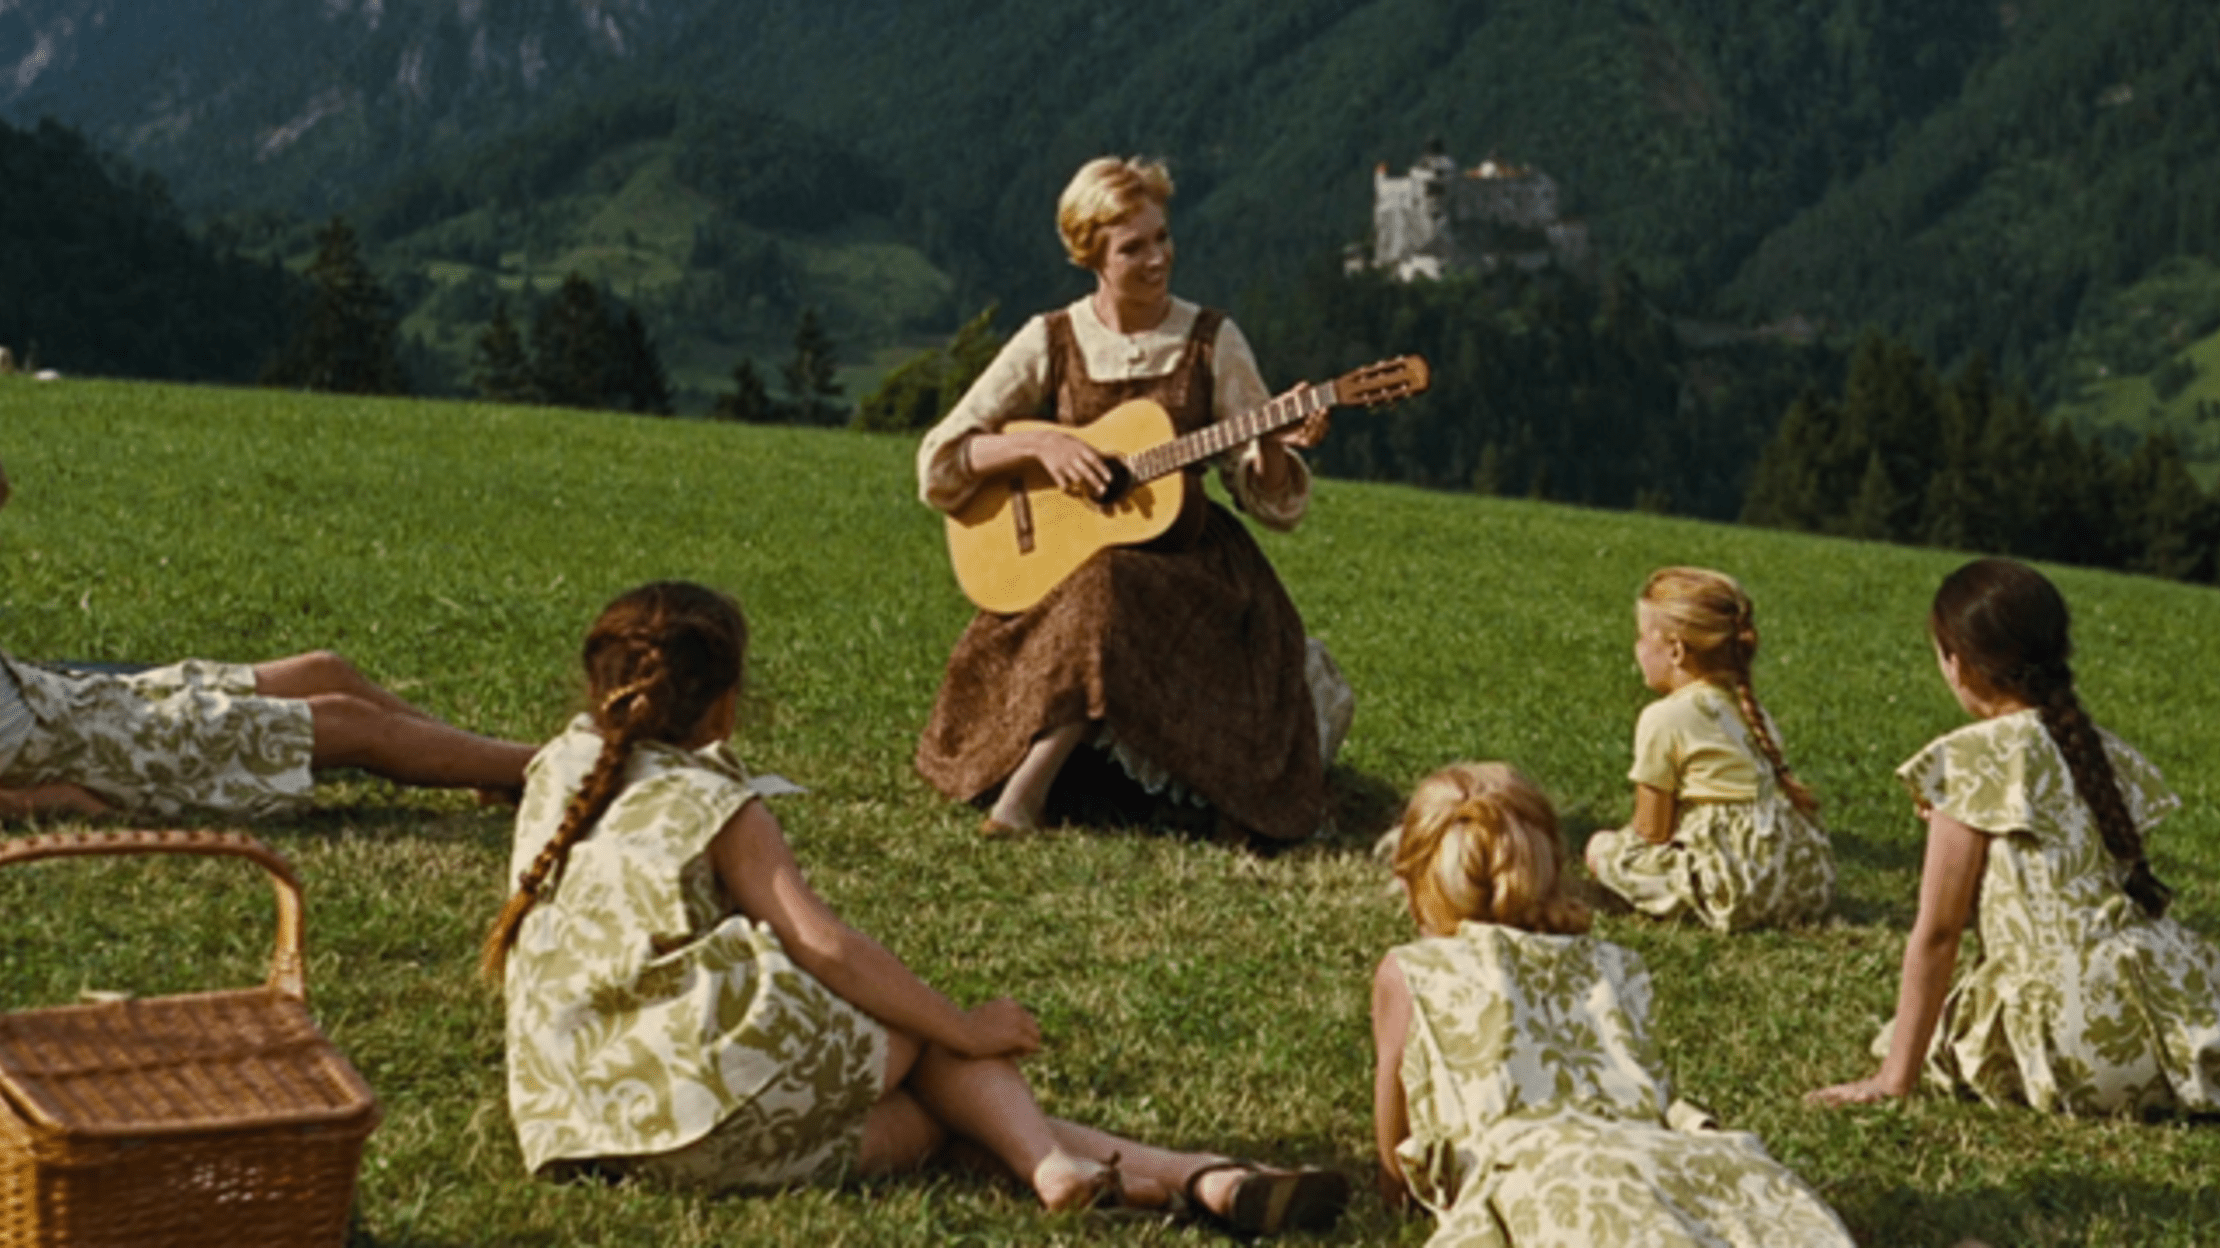 14 Facts About The Sound of Music | Mental Floss